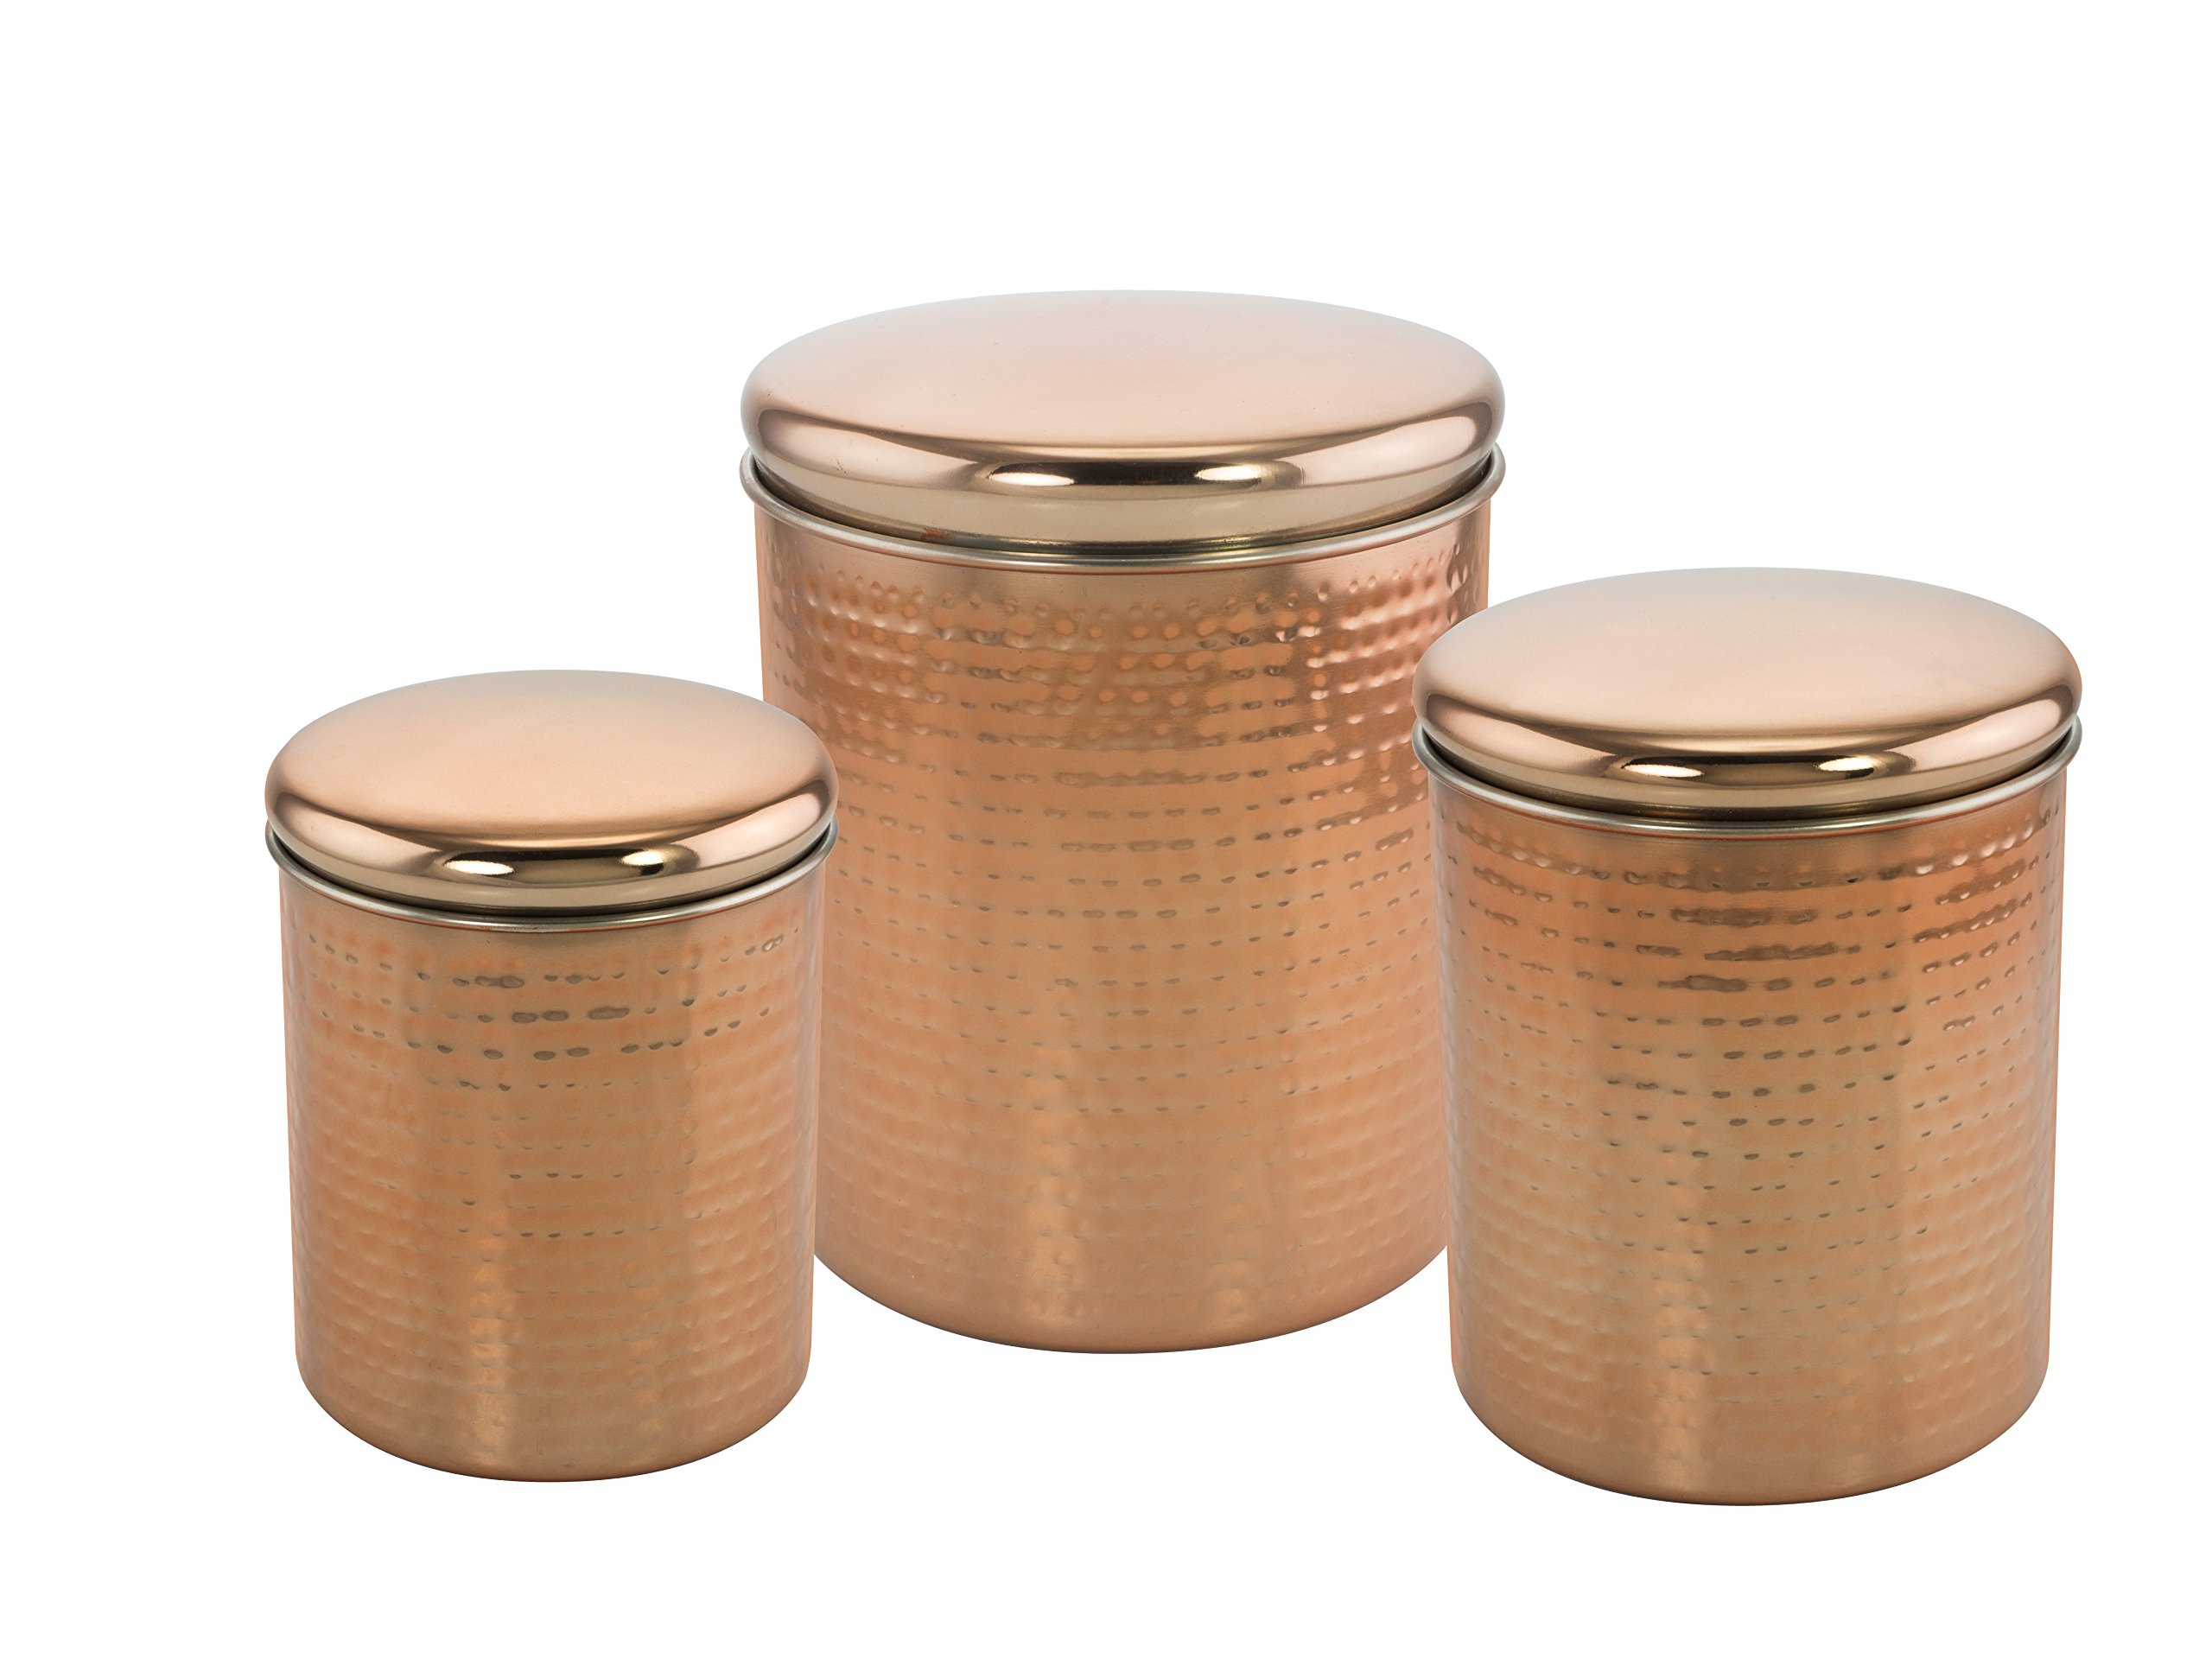 KOVOT Set of 3 Copper Plated Stainless Steel Nesting Canisters With Lids